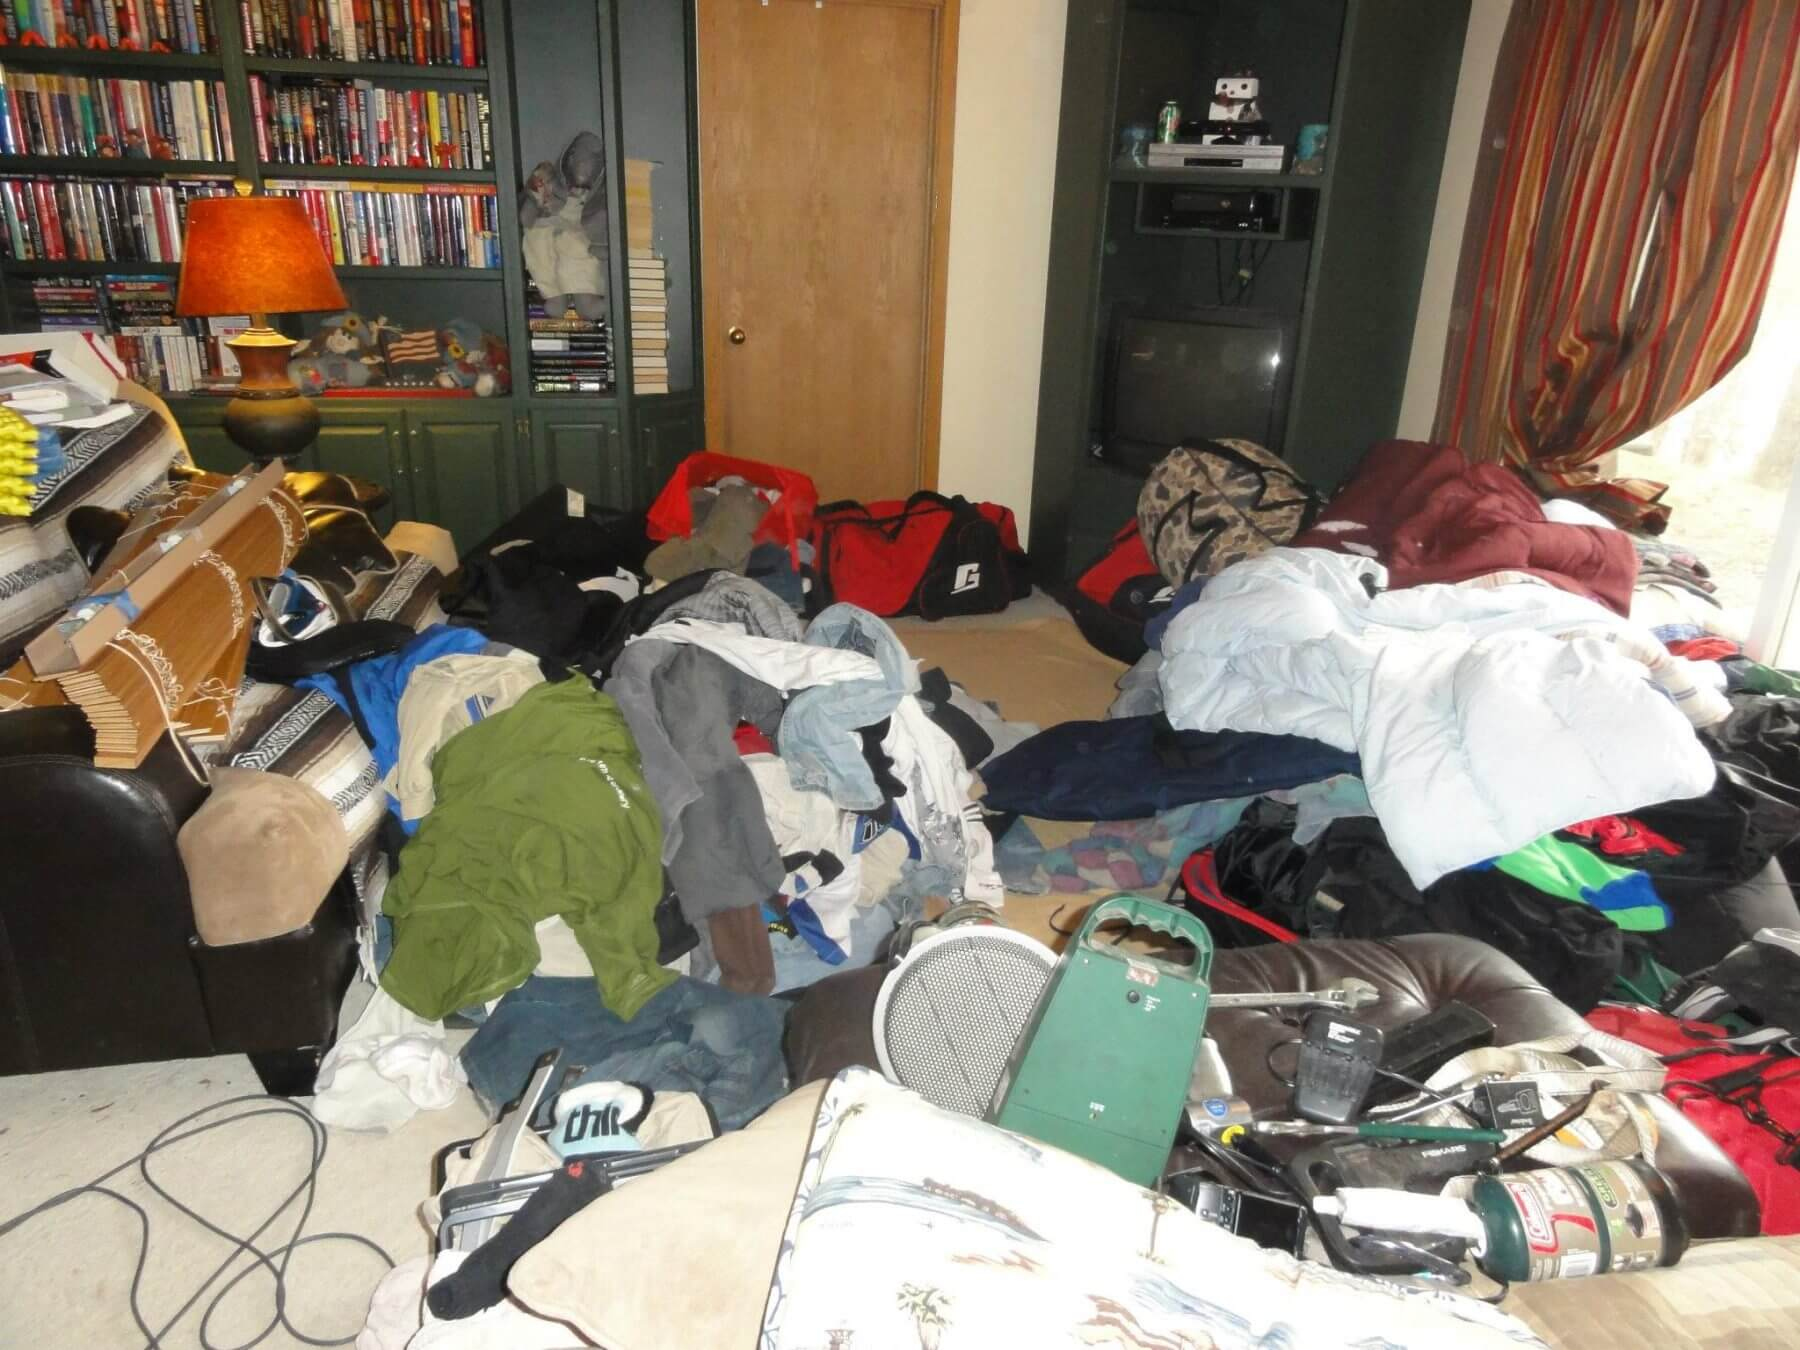 AVOID TRAVEL PLANNING OR YOUR NEXT TRIP PACKING DAY MAY LOOK LIKE THIS MESS